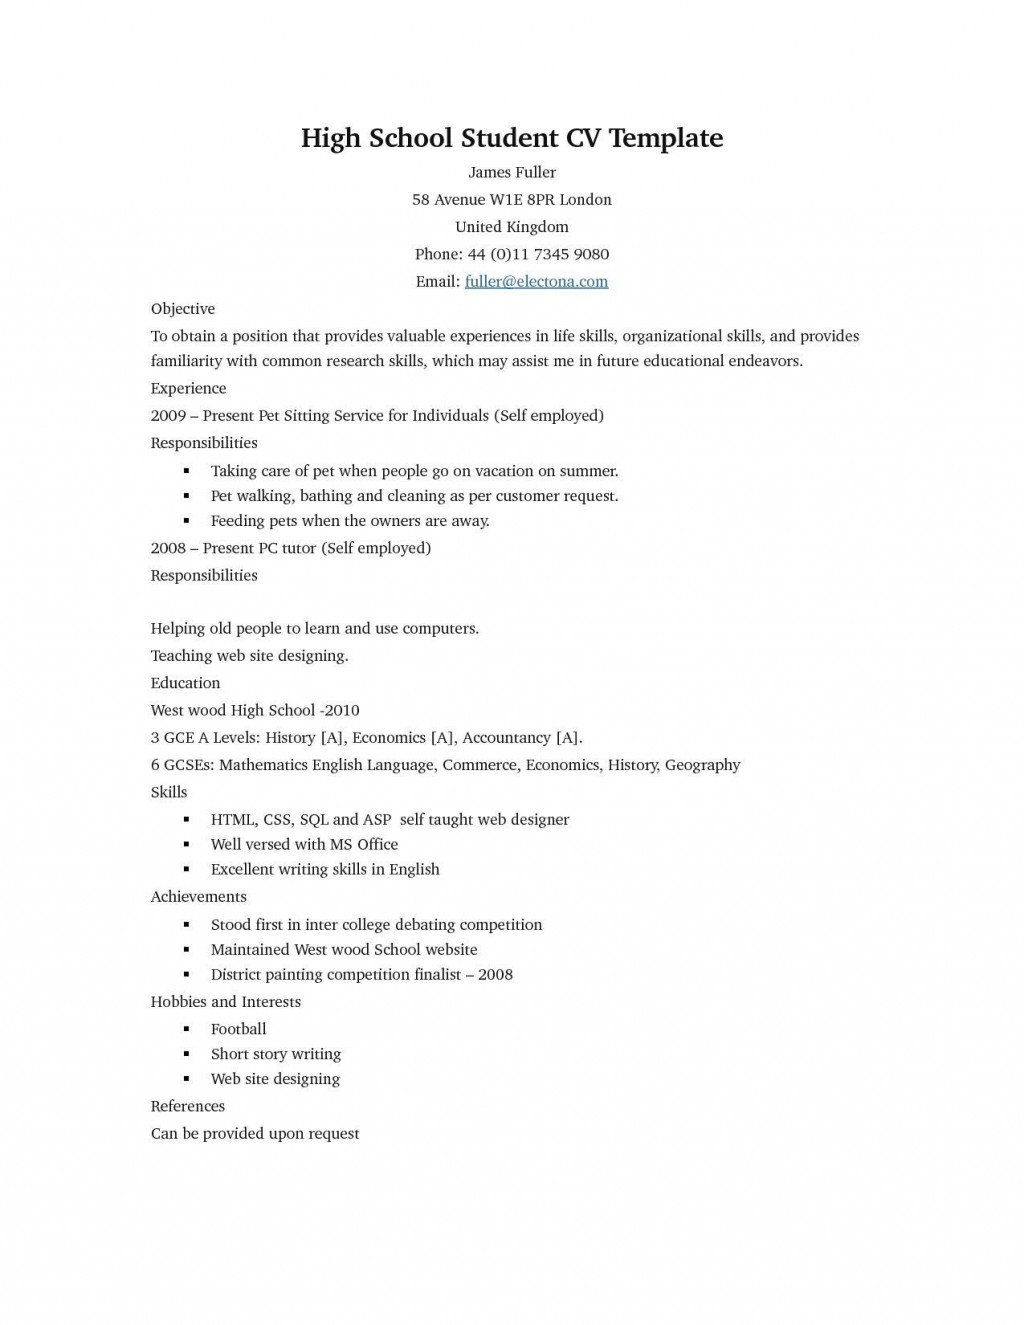 007 Phenomenal Free Sample High School Resume Template Resolution Large